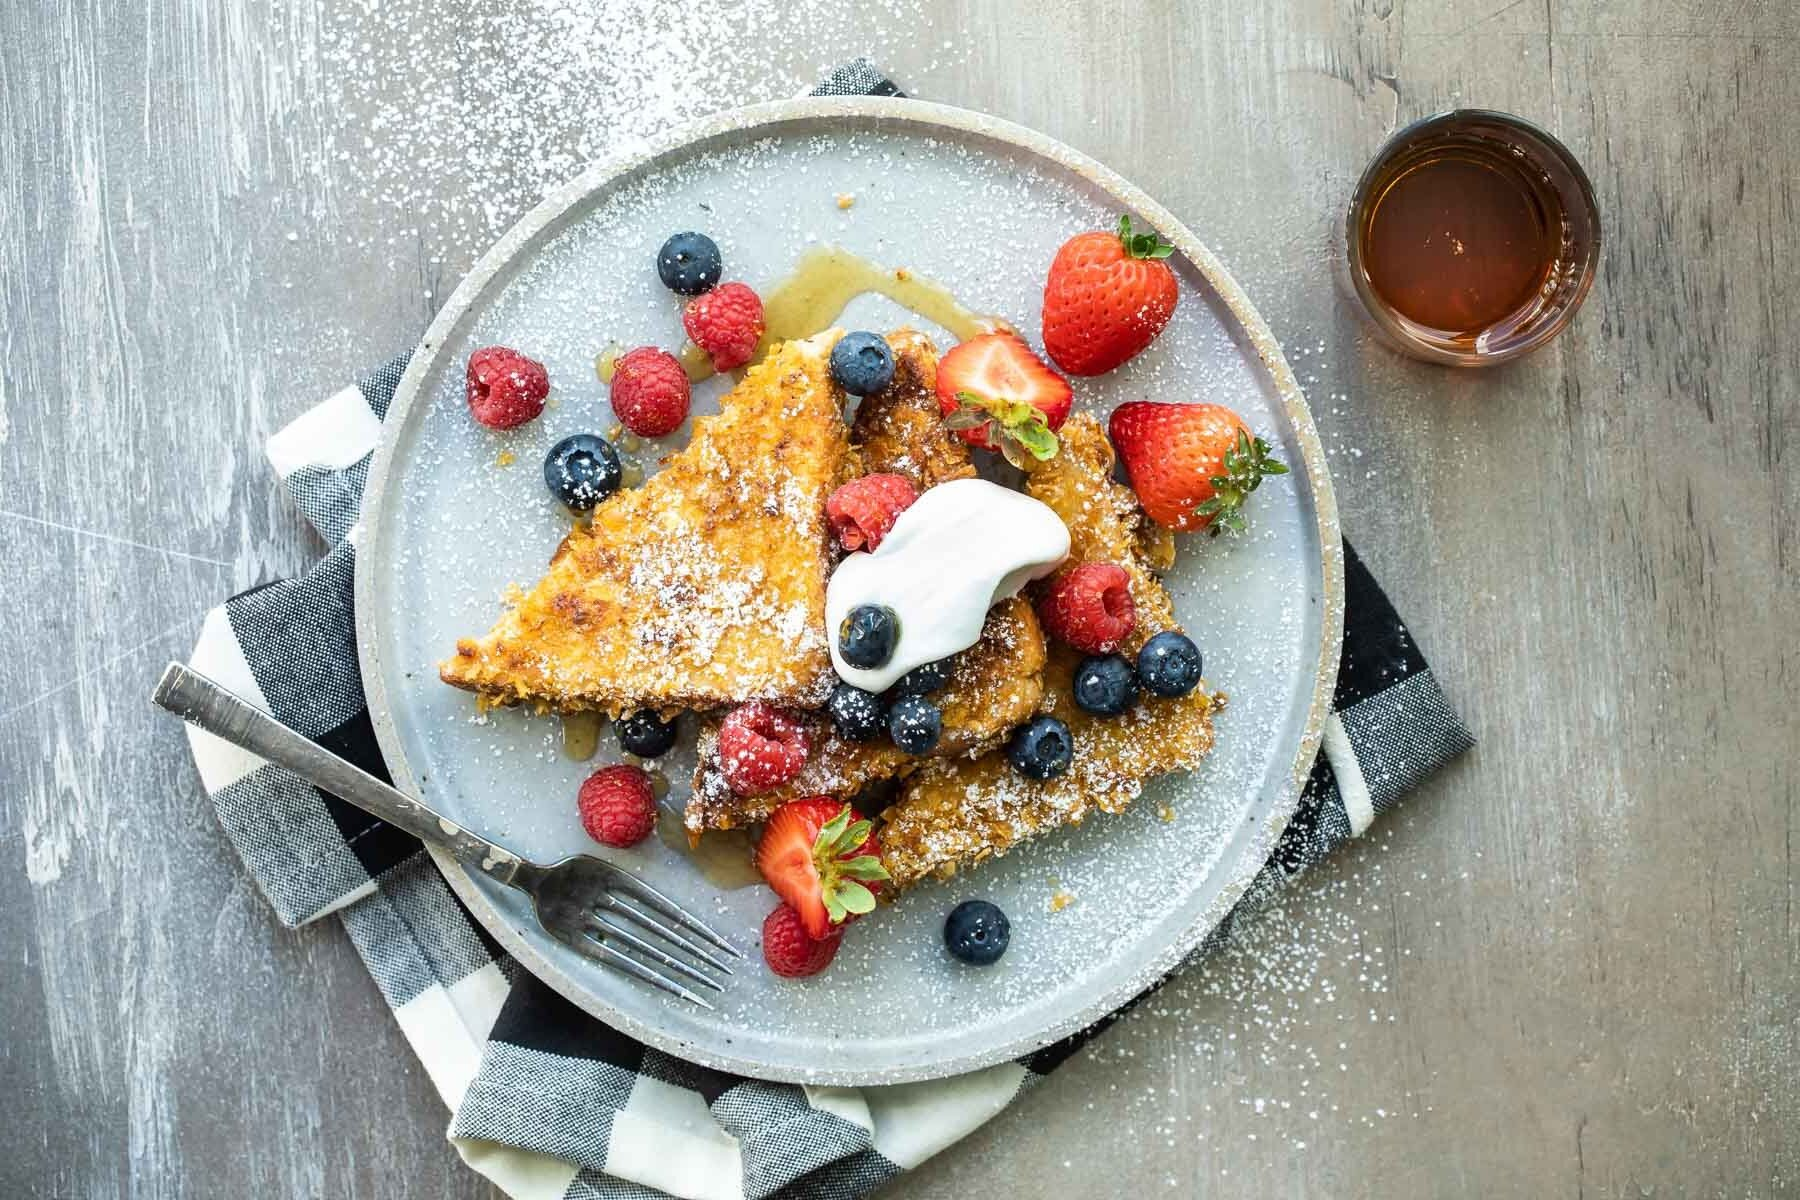 A plate of cornflake crusted french toast with fruit.